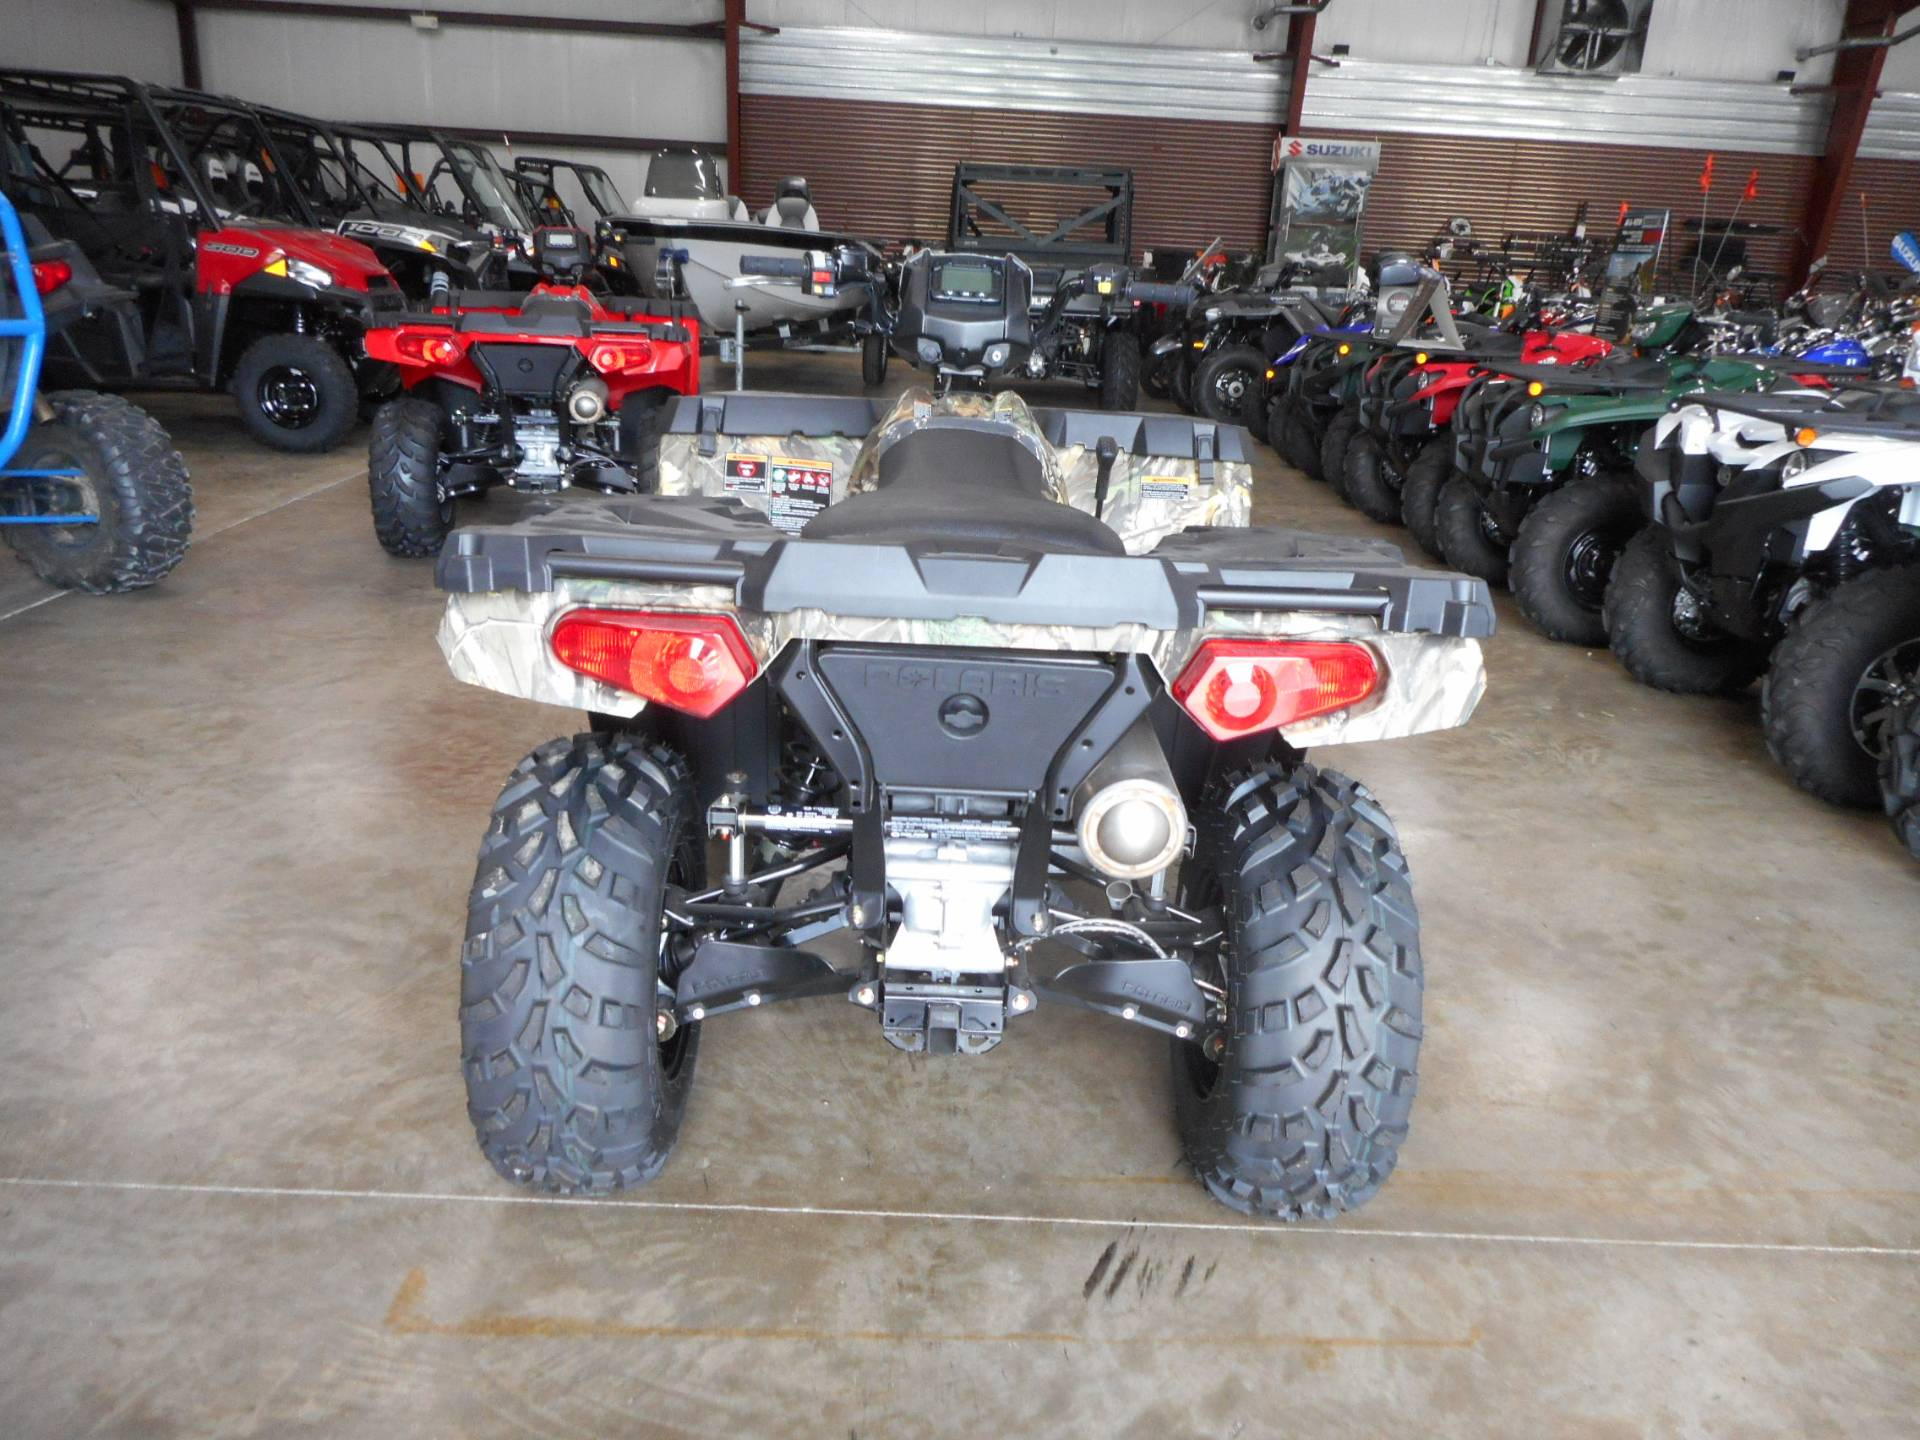 2019 Polaris Sportsman 570 EPS Camo in Belvidere, Illinois - Photo 6